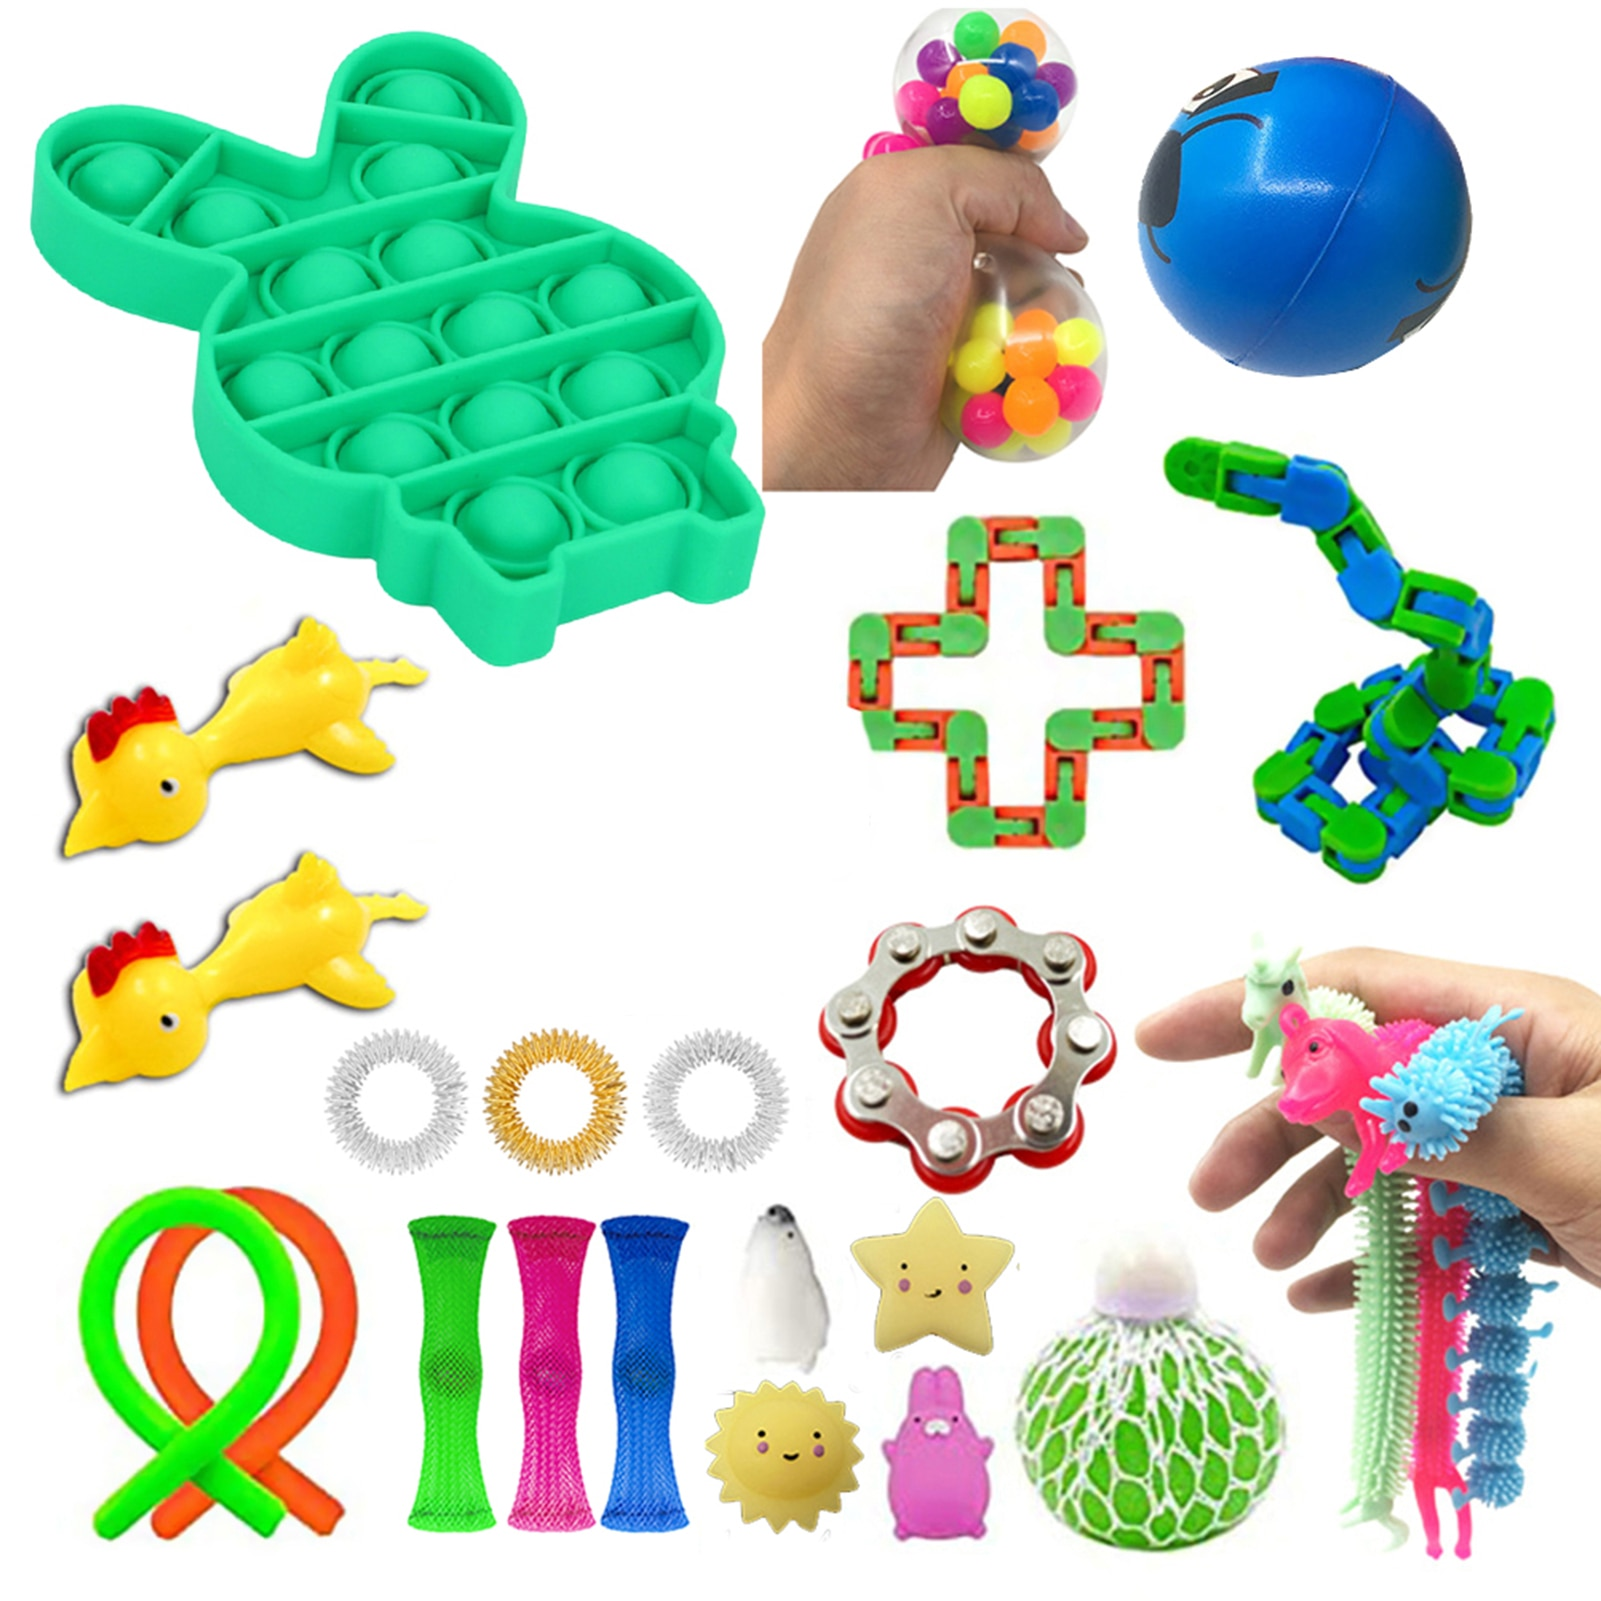 In Stock Fidget Toys Pop Antistress it Decompression Simple Dimple Anti-stress Hand Stress Relief Toy 24 Pack for Children Kids